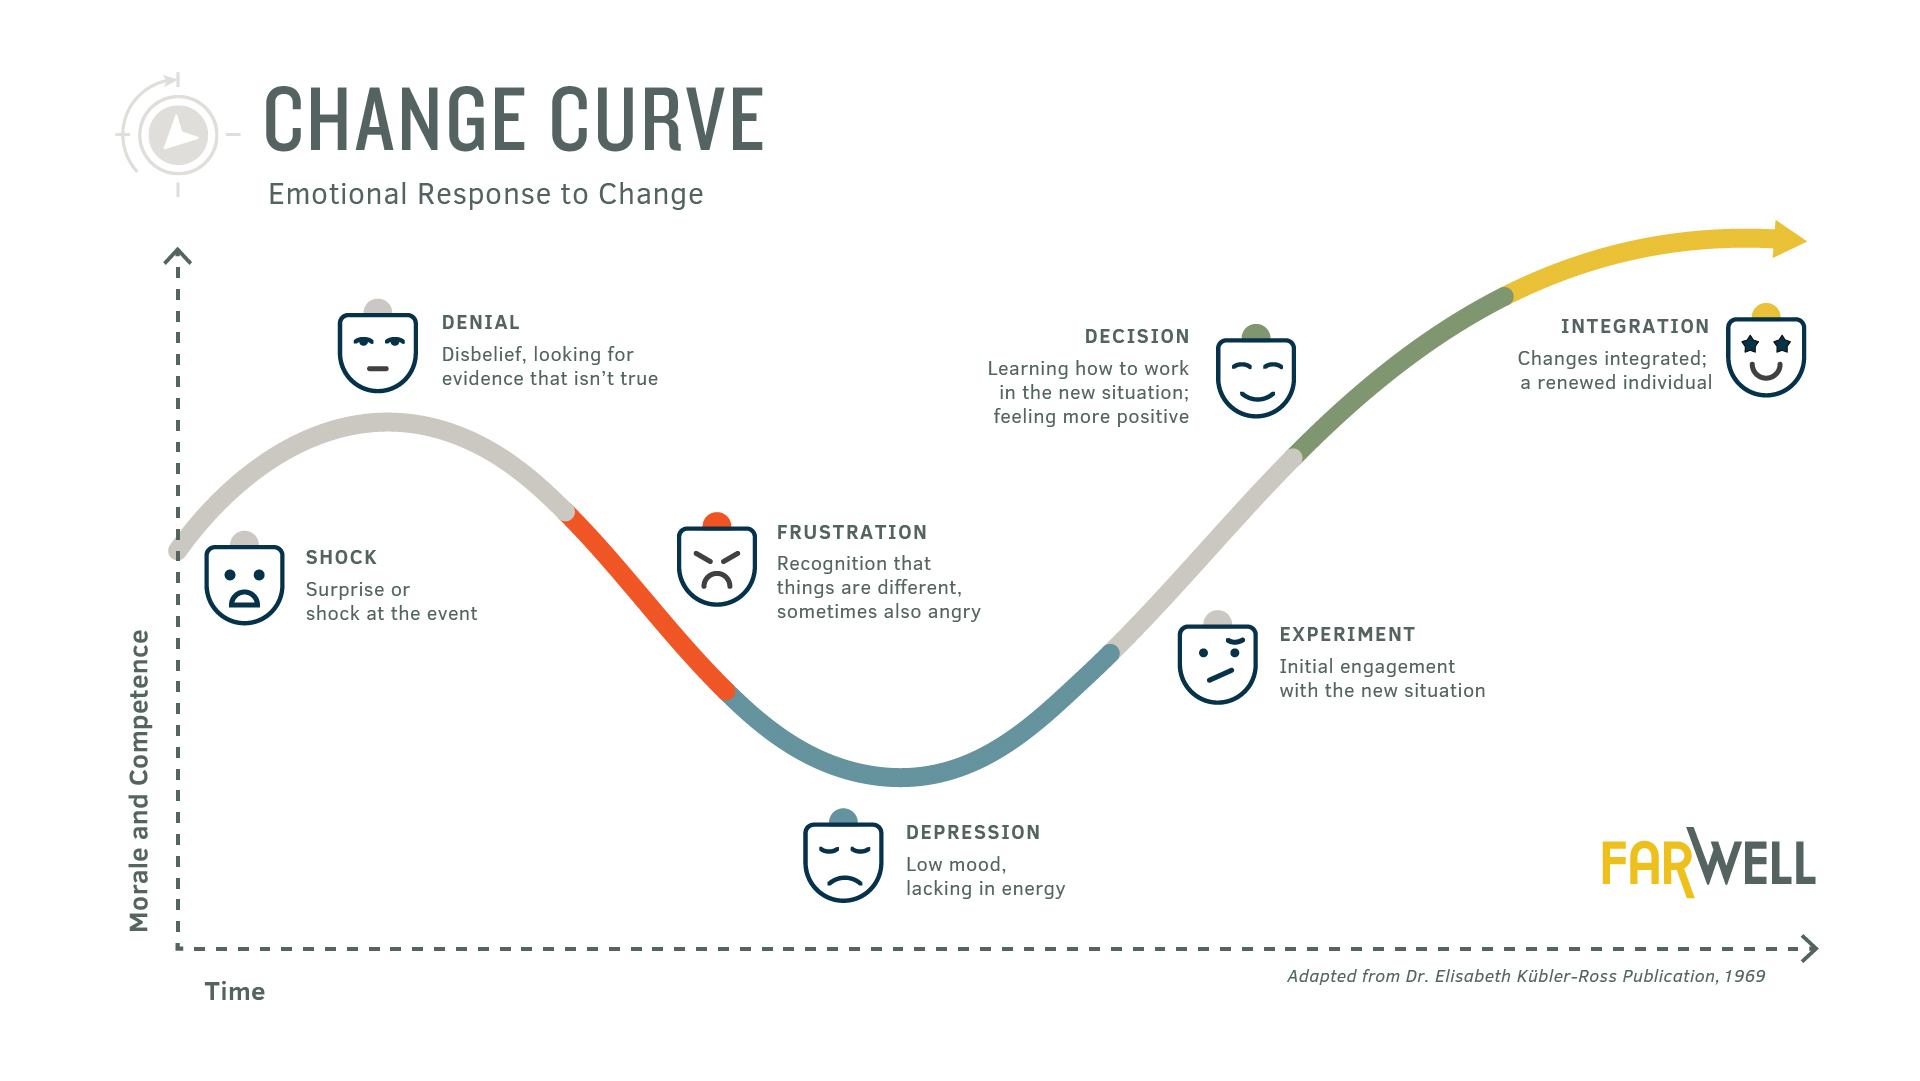 Emotionally Support Employees During Change   Use the Change Curve as a Conversation Canvas